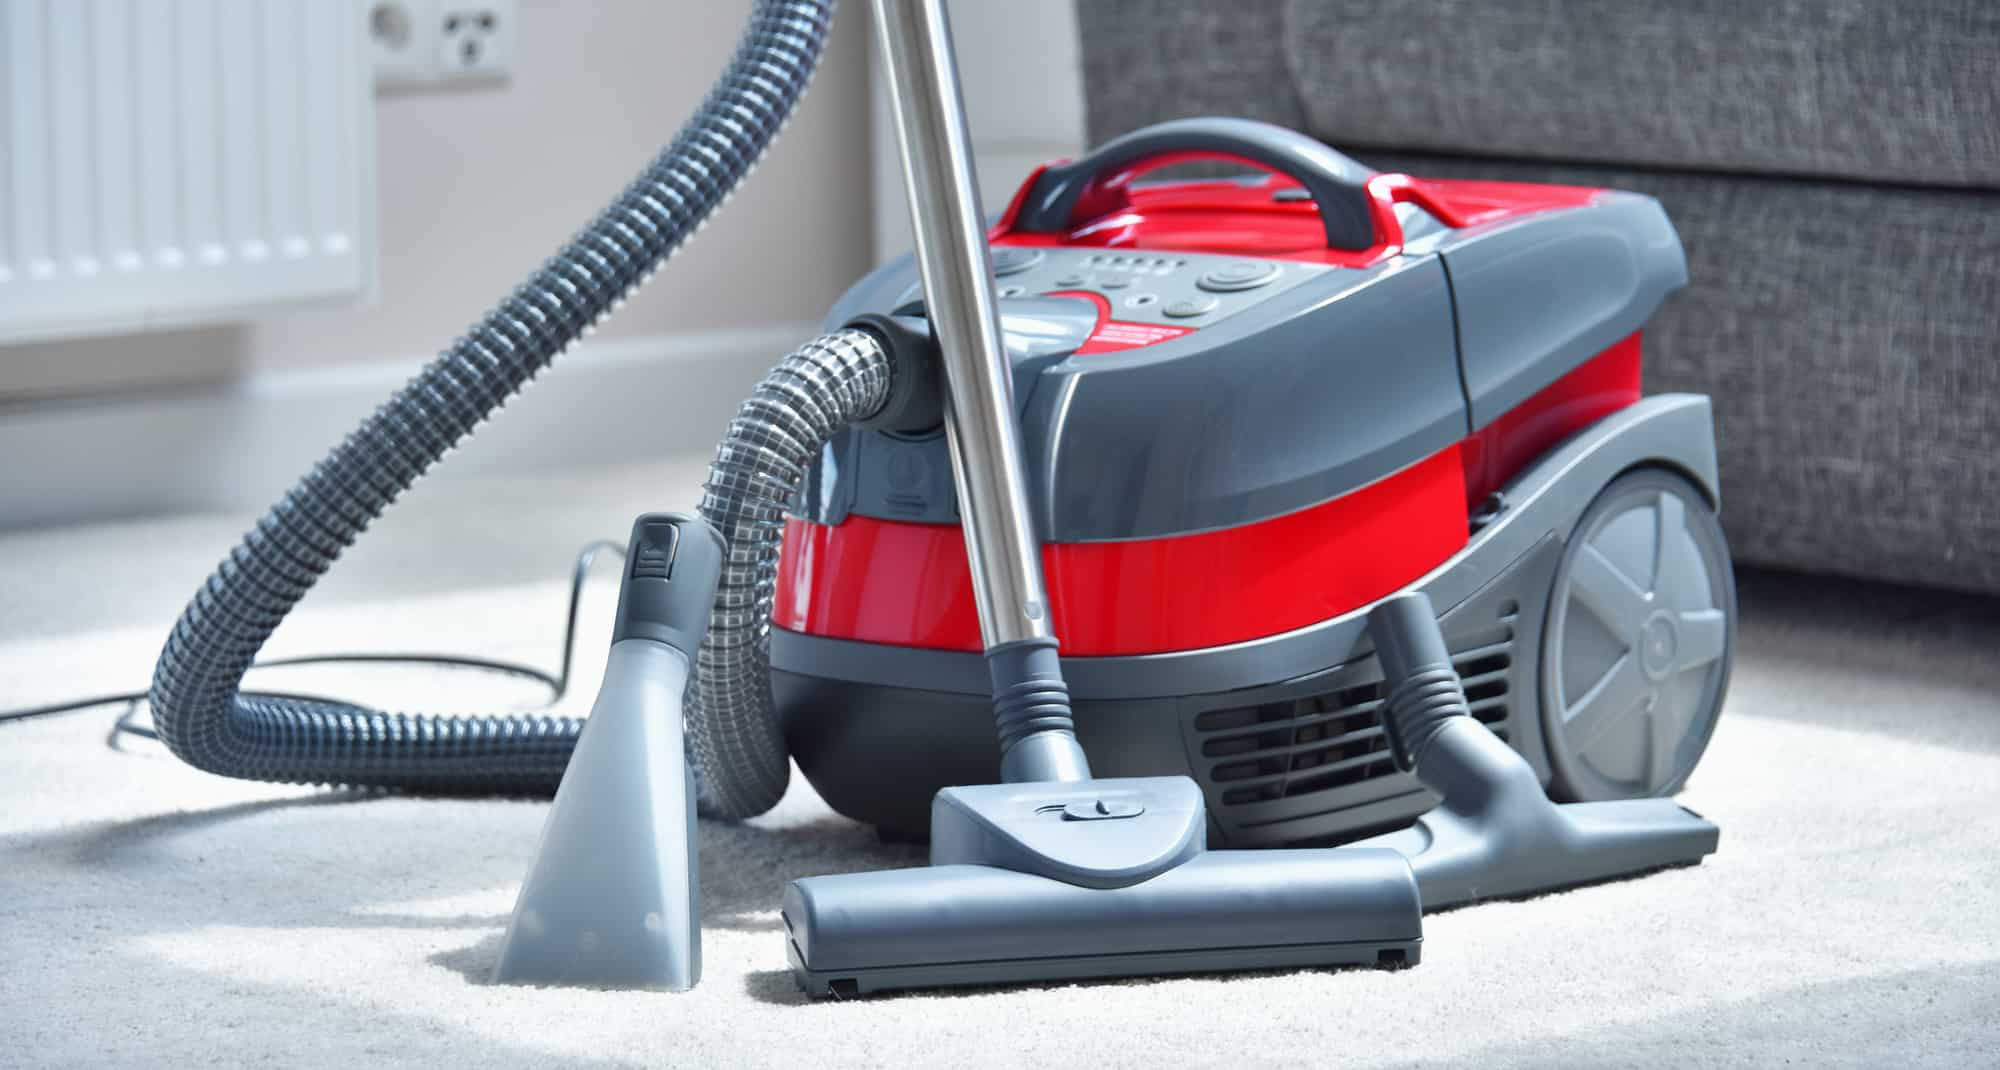 How To Choose The Best Canister Vacuum